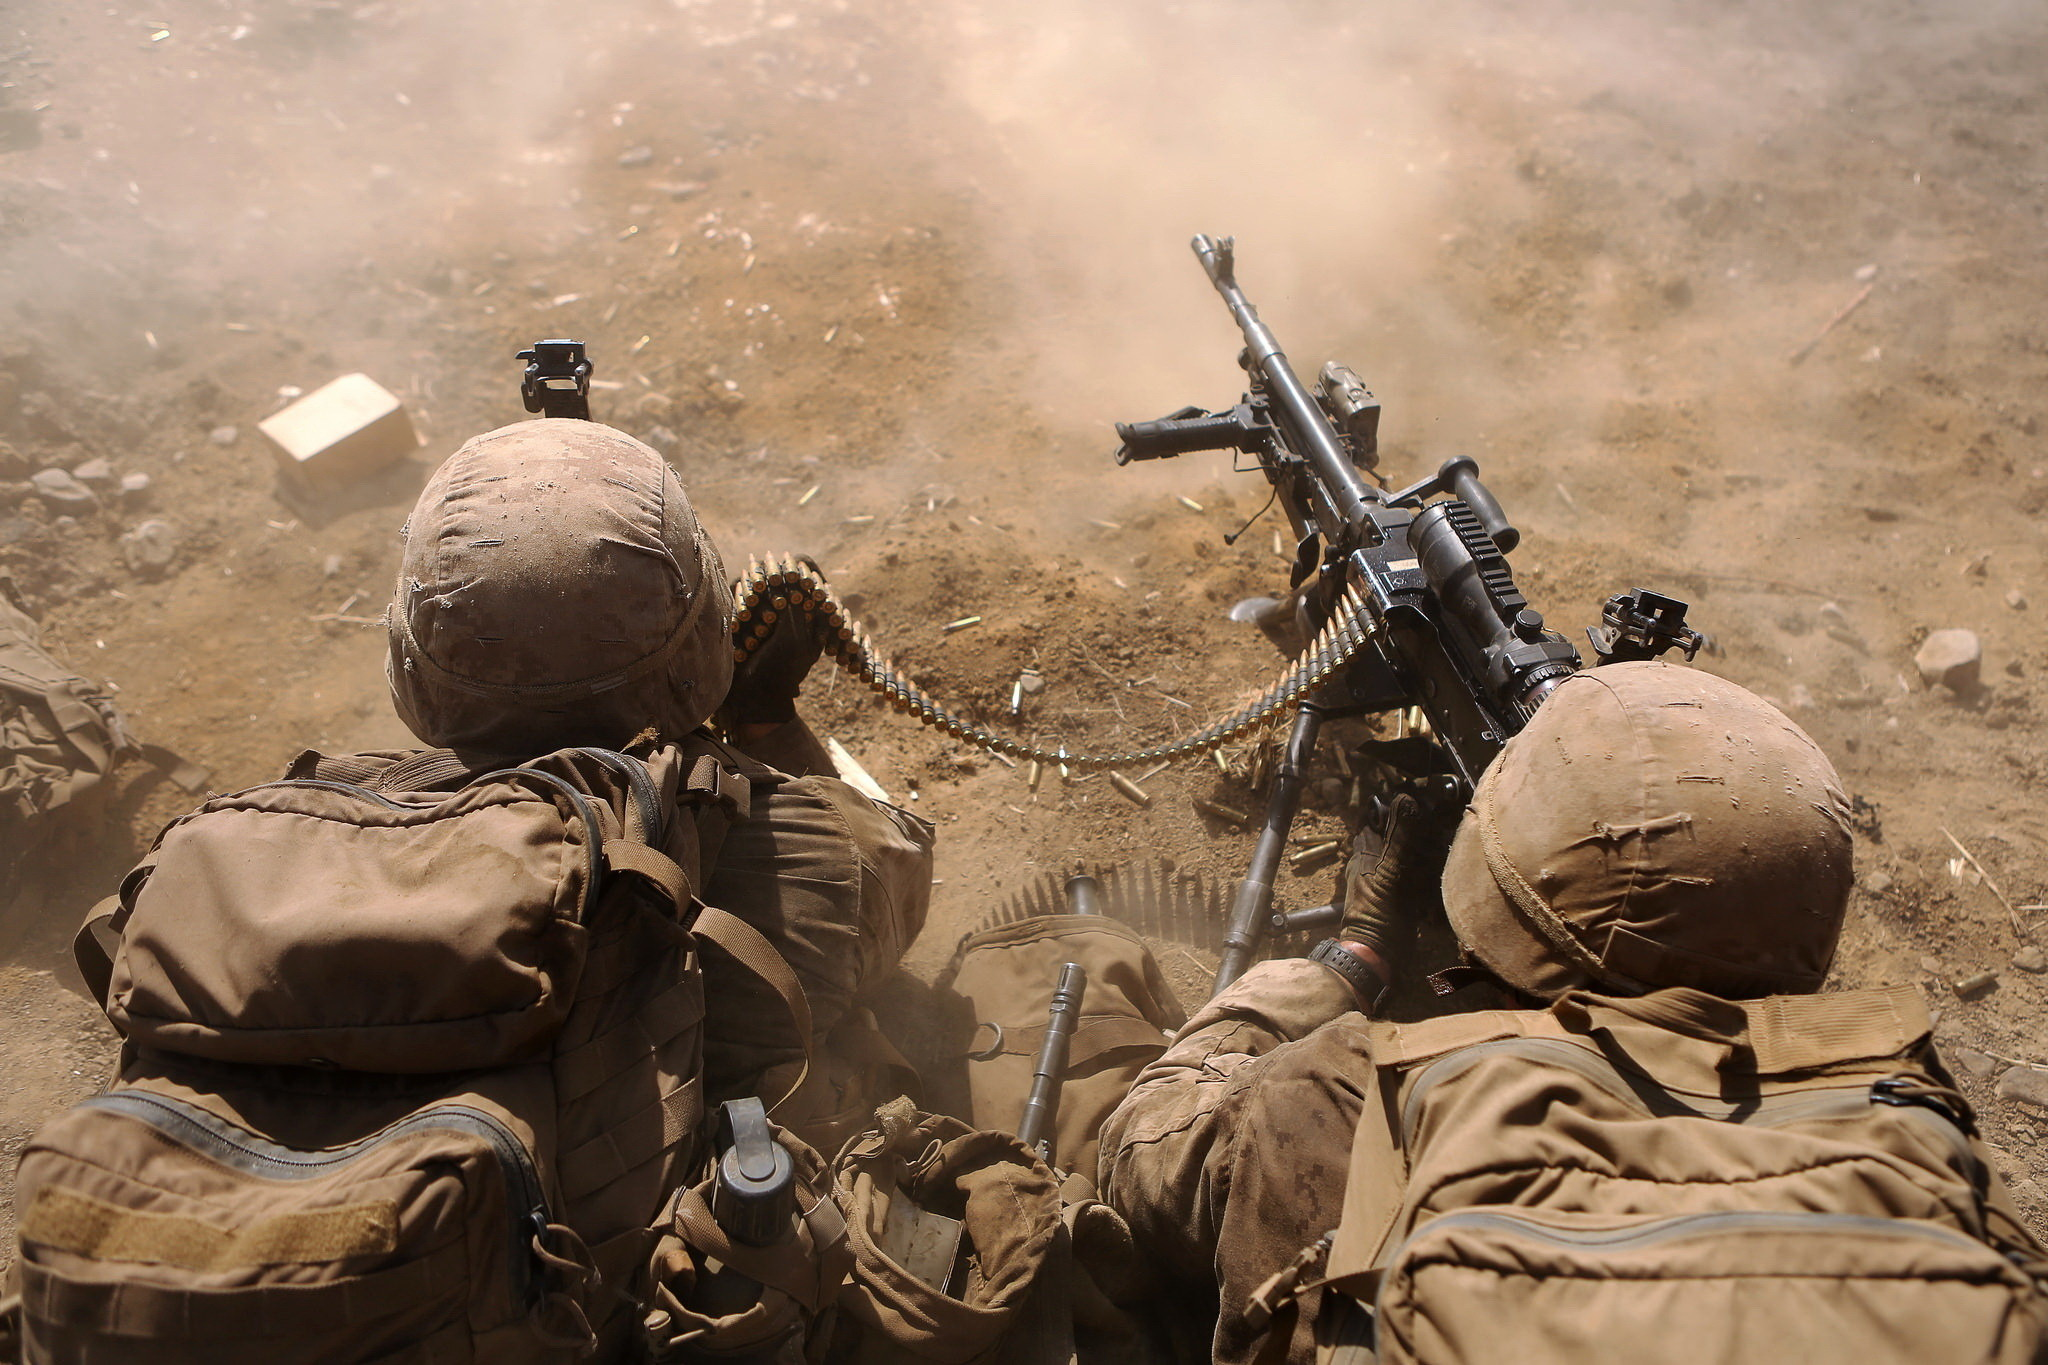 Best Marine Corps Wallpapers X For Iphone